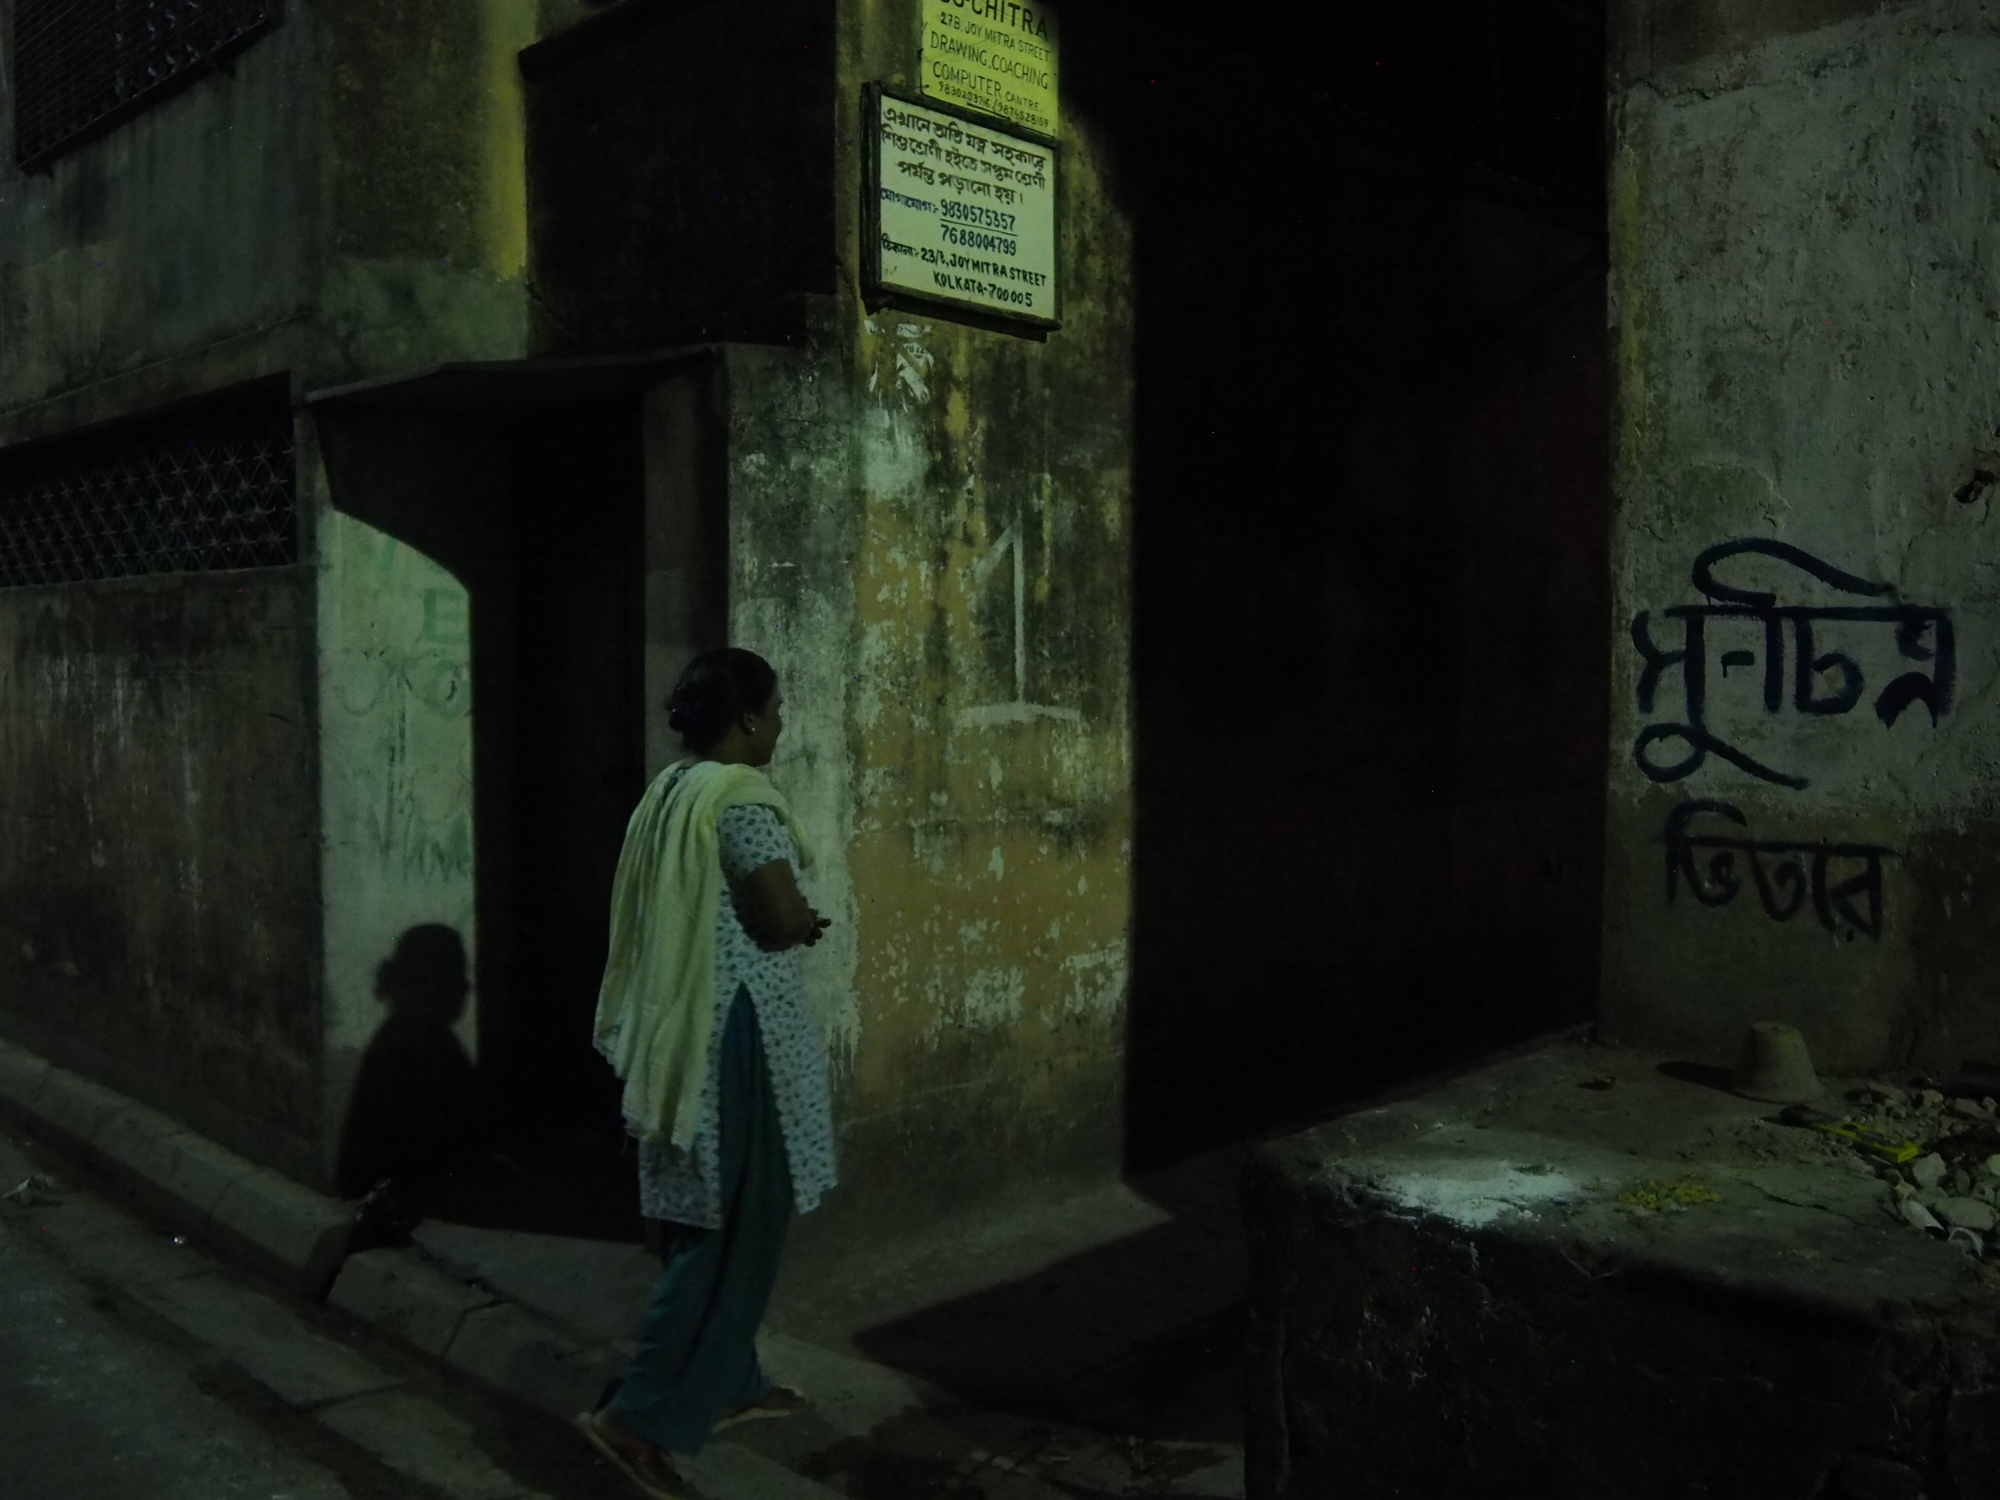 Sumita Biswas (name changed for anonymity) leads us through Sonagachi.